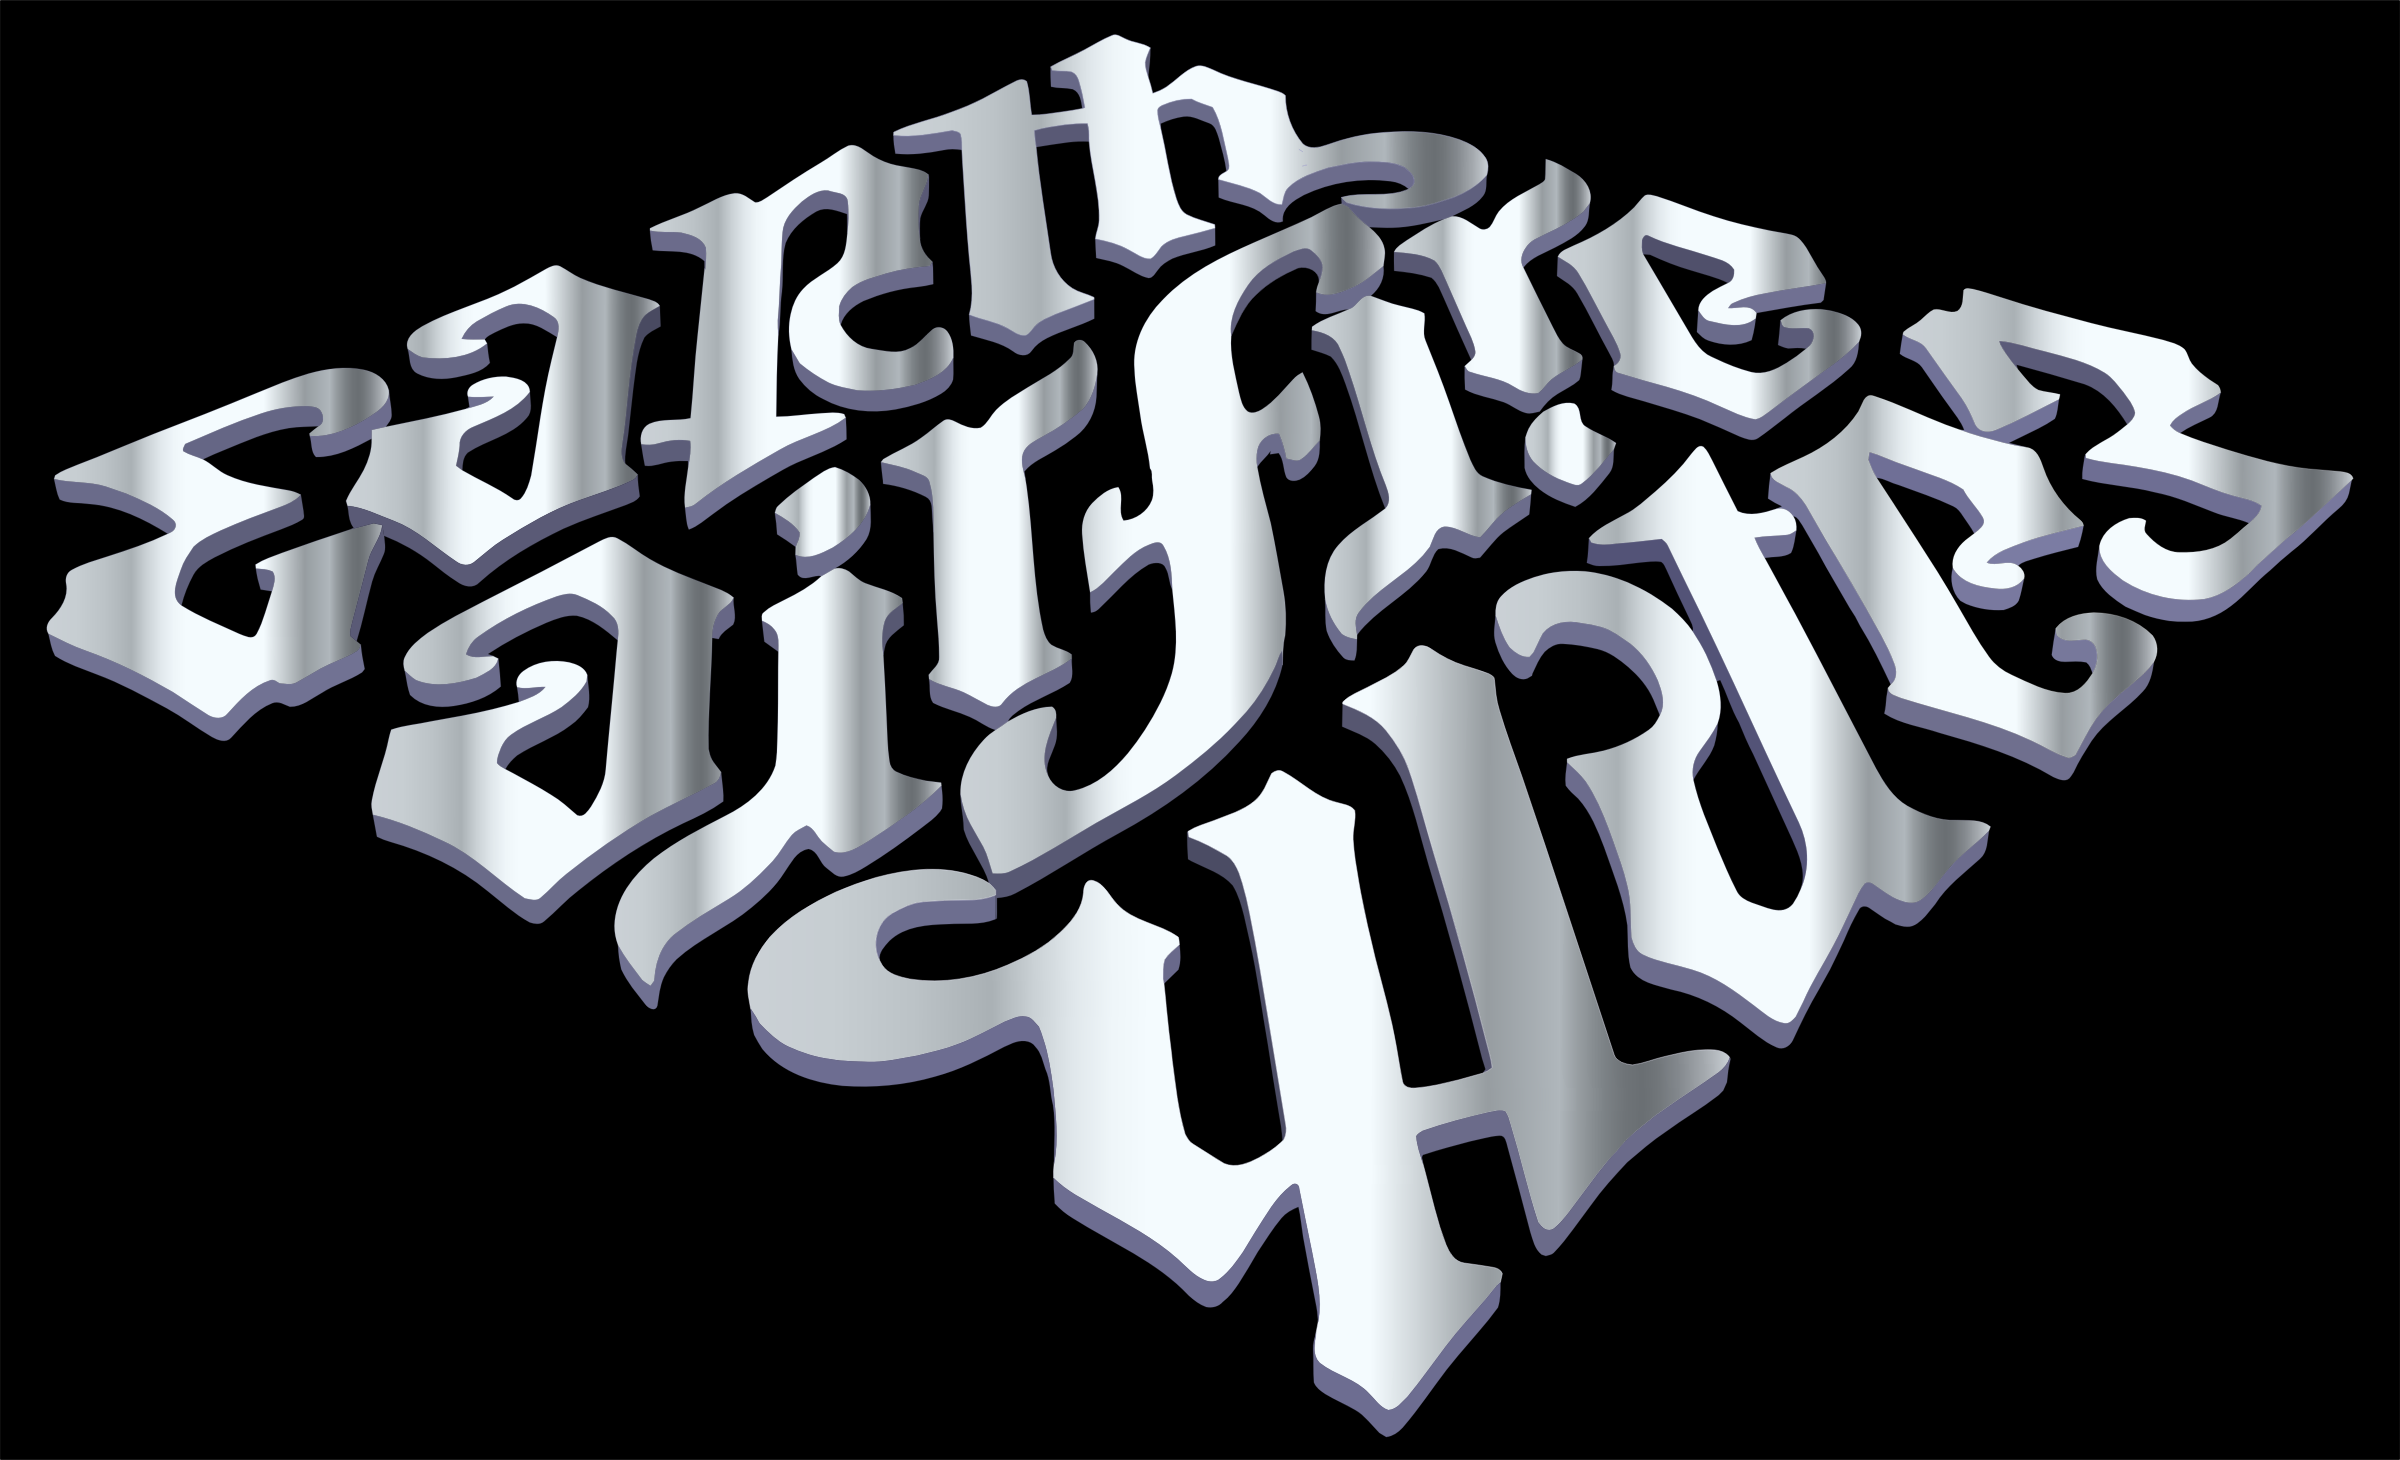 Earth Air Fire Water Ambigram 3 by GDJ